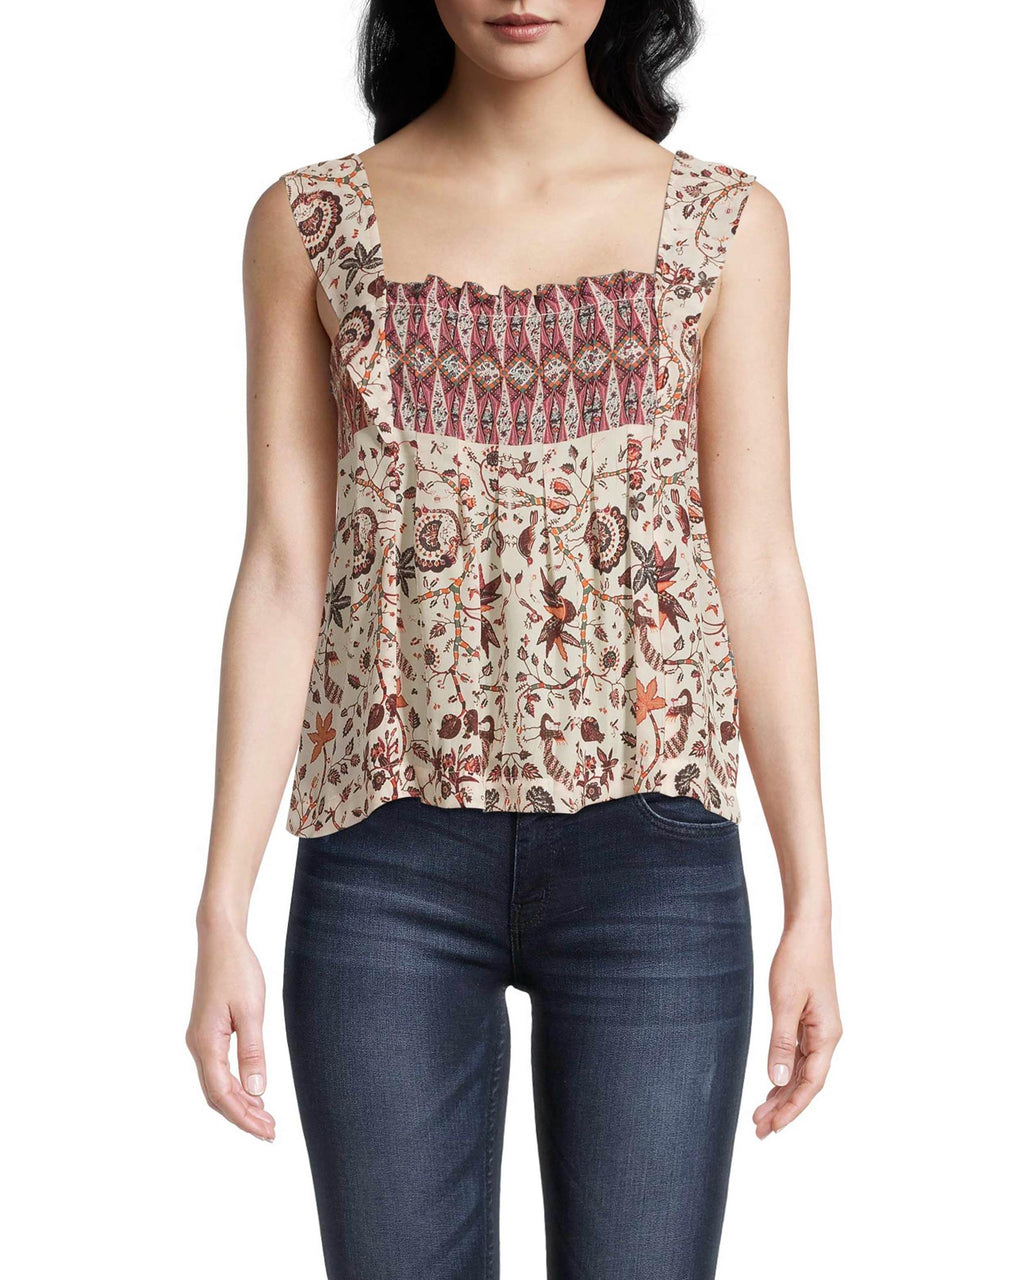 CT18556 - JAKARTA PRINT PLEATED TANK - tops - blouses - Designed in one of our favorite new prints, this lightweight tank features delicate pleating and flared straps for added texture. The square neckline is perfect for highlighting some of your favorite jewelry. Add 1 line break Stylist Tip: Style with our cozy cotton plaited cardigan.